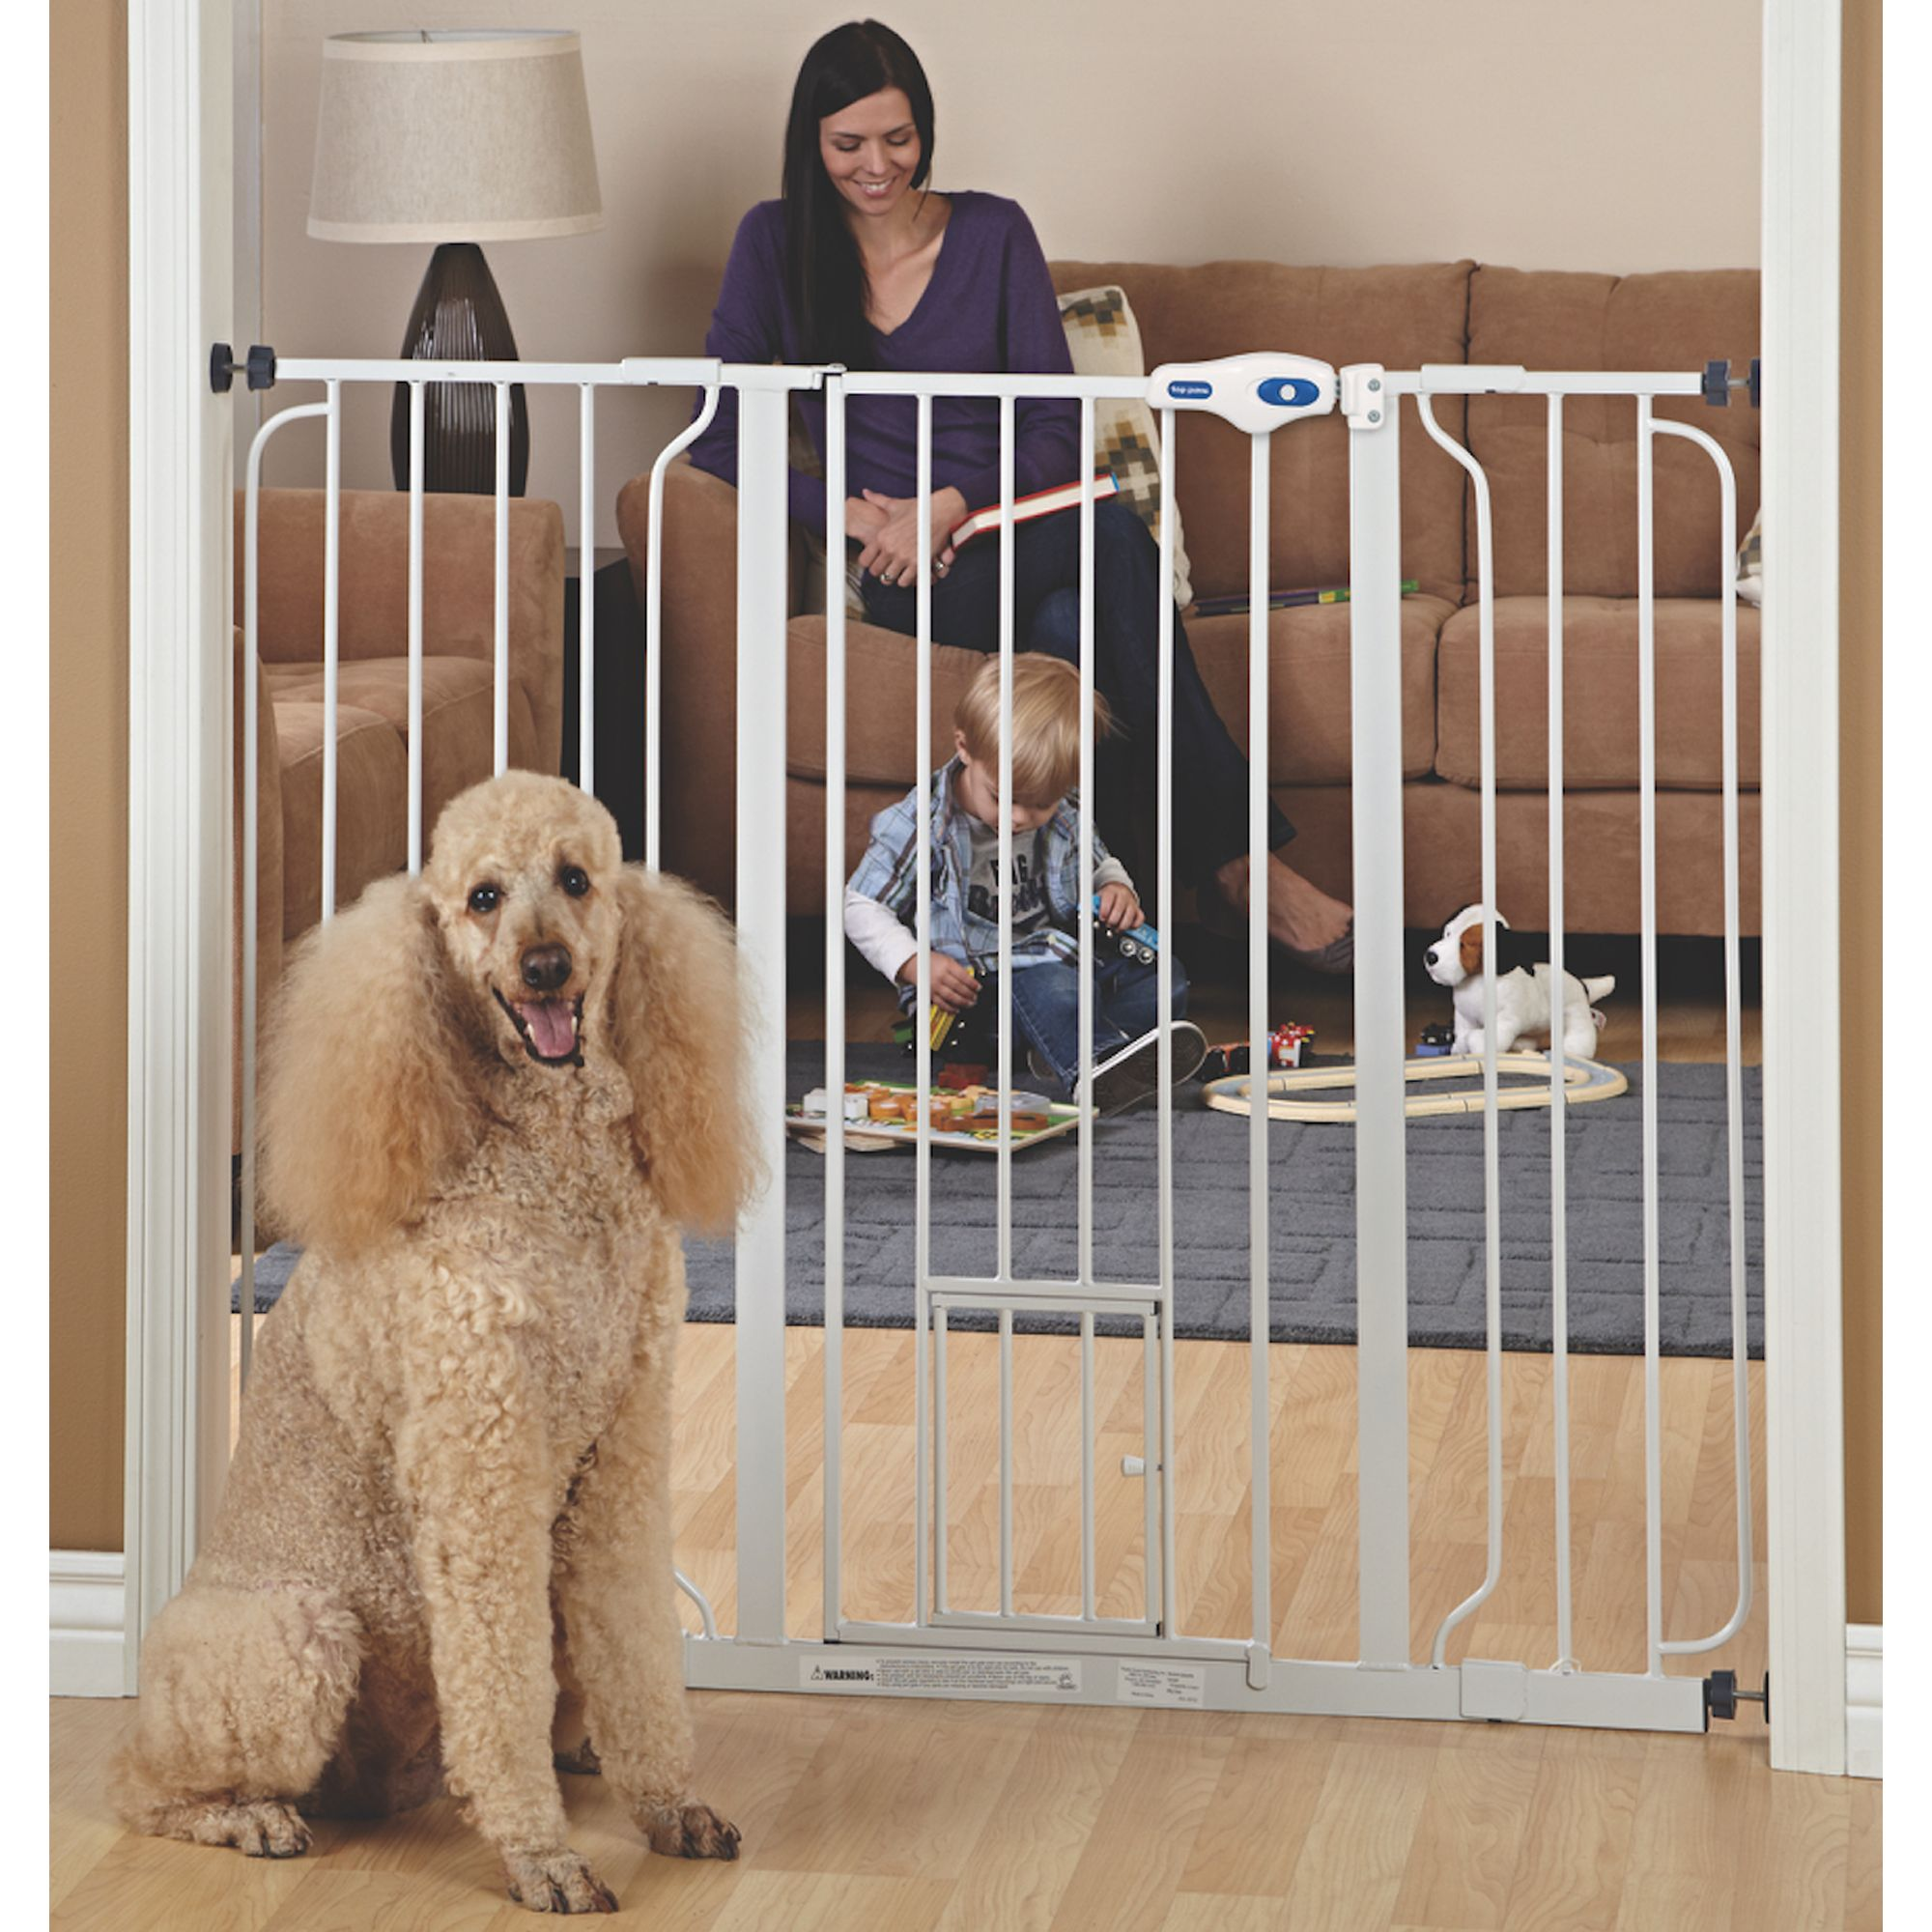 Products Just for dogs   Pet Supply Online Store   Best ...